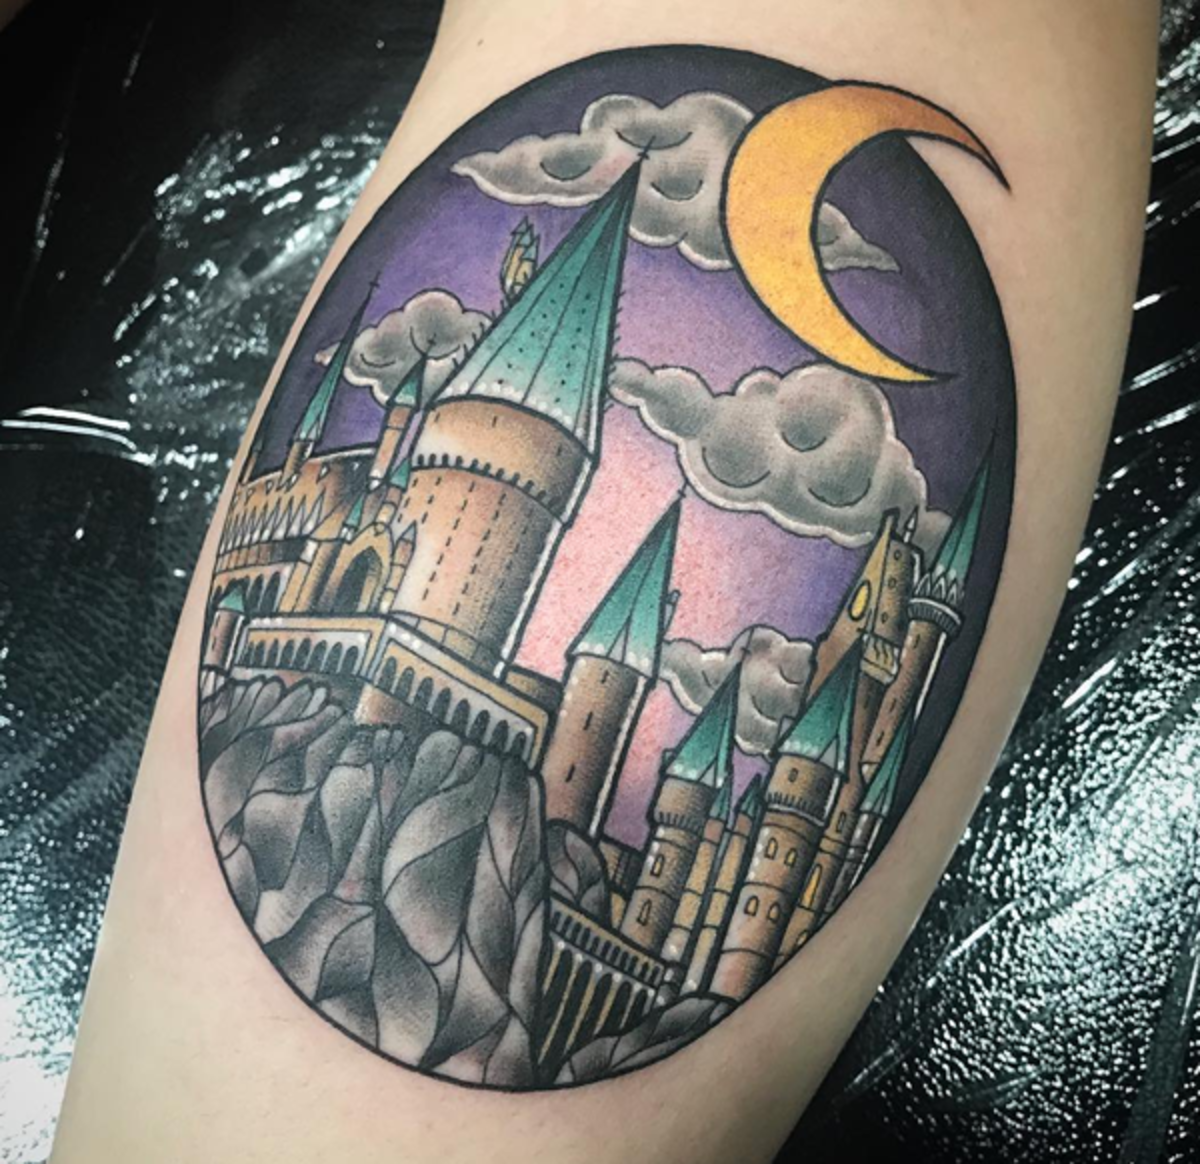 Harry Potter Tattoo Ideas and Photos!